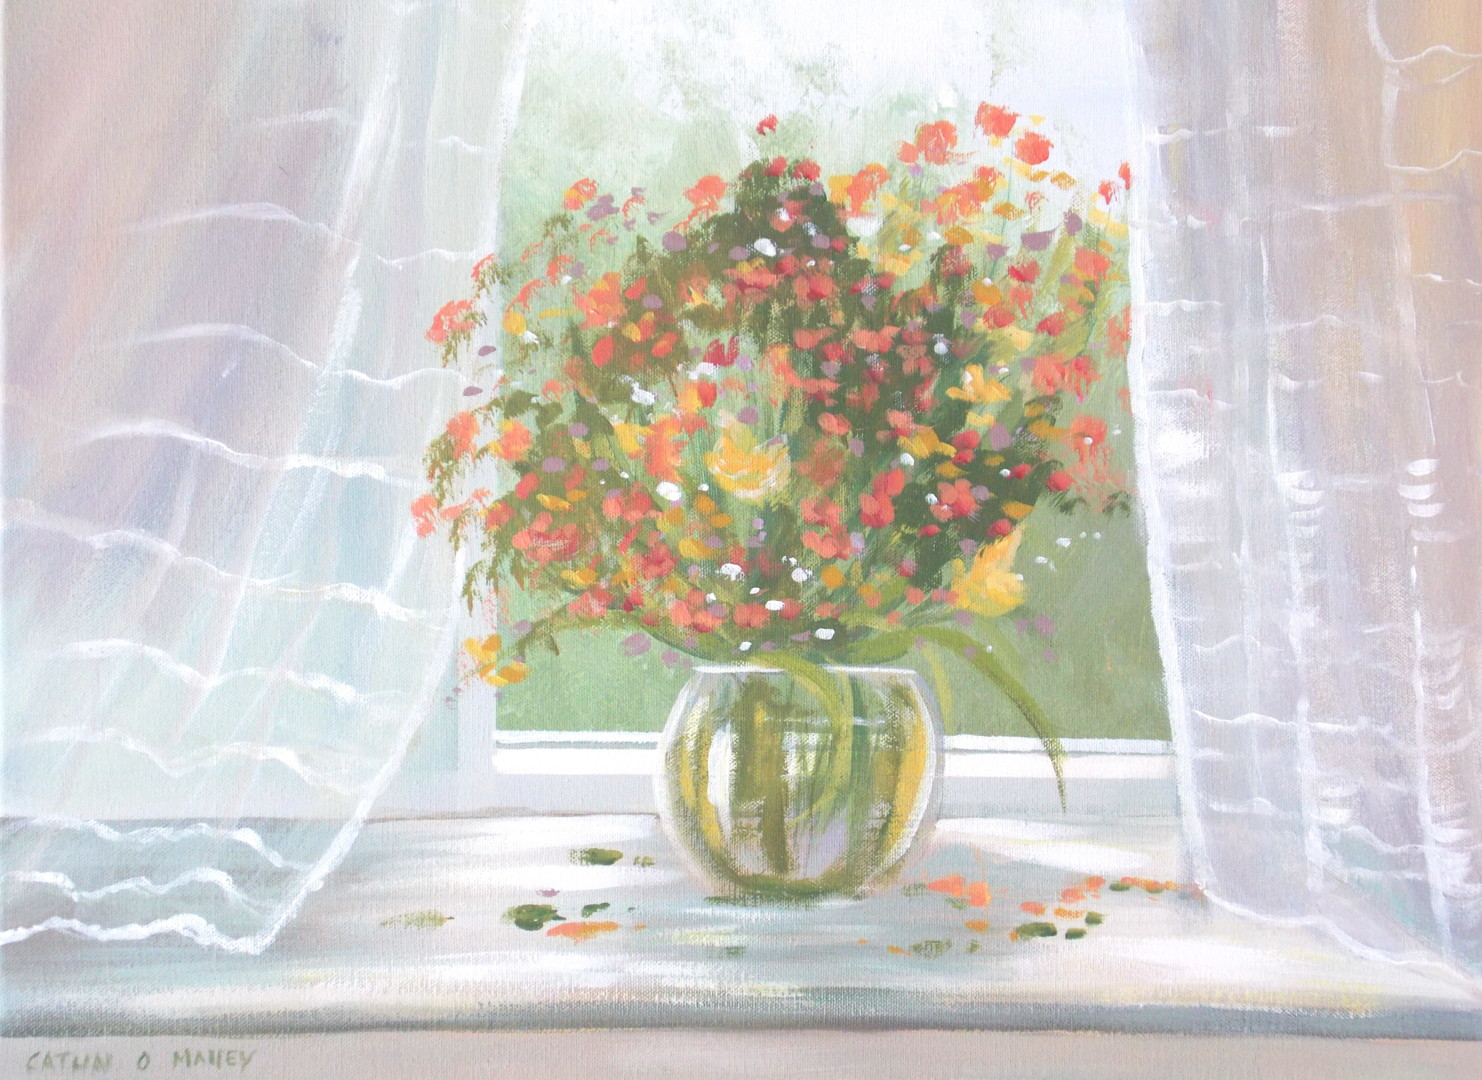 Cathal O Malley - cottage window flowers